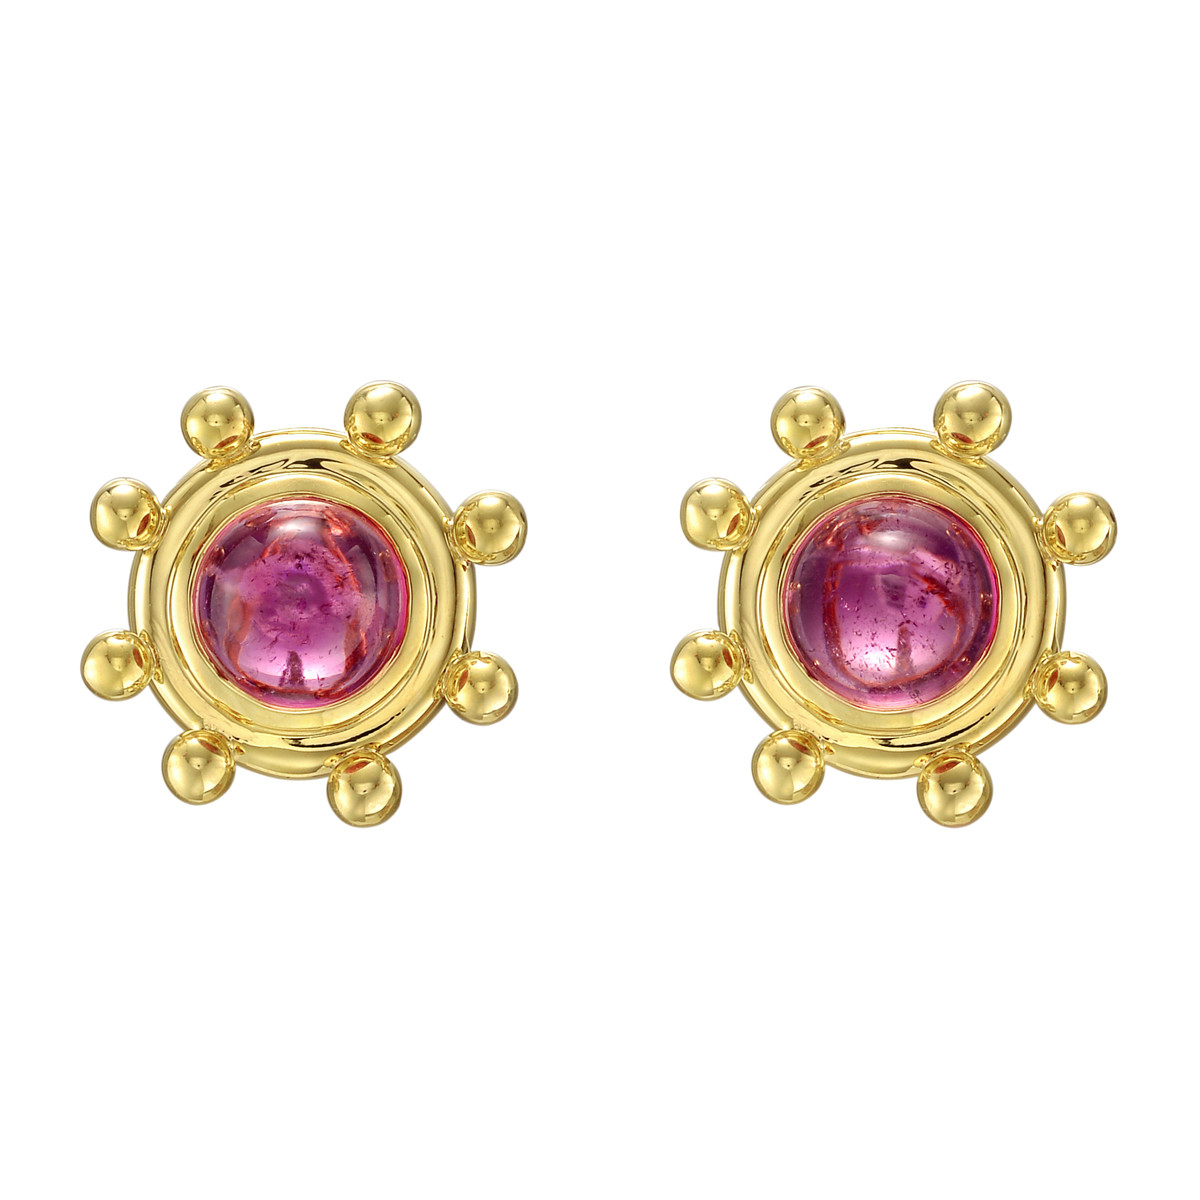 Round Cabochon Cut Pink Tourmaline Earrings The Tourmalines Bezel Set In Polished 18k Yellow Gold Mounts With A Beaded Fringe Signed Paloma Pico For